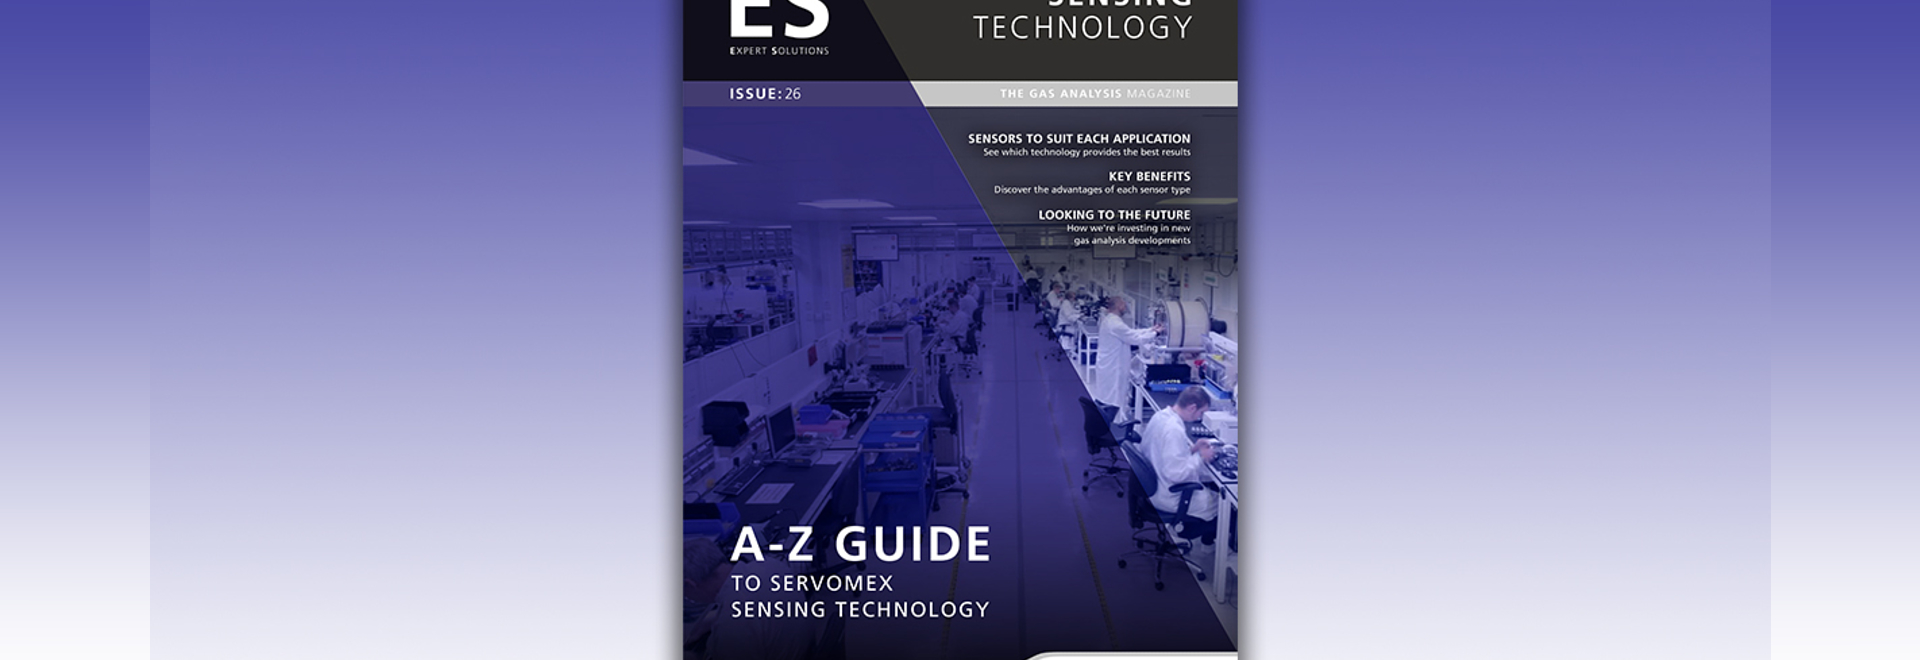 Our new A-Z guide to Servomex sensing technologies